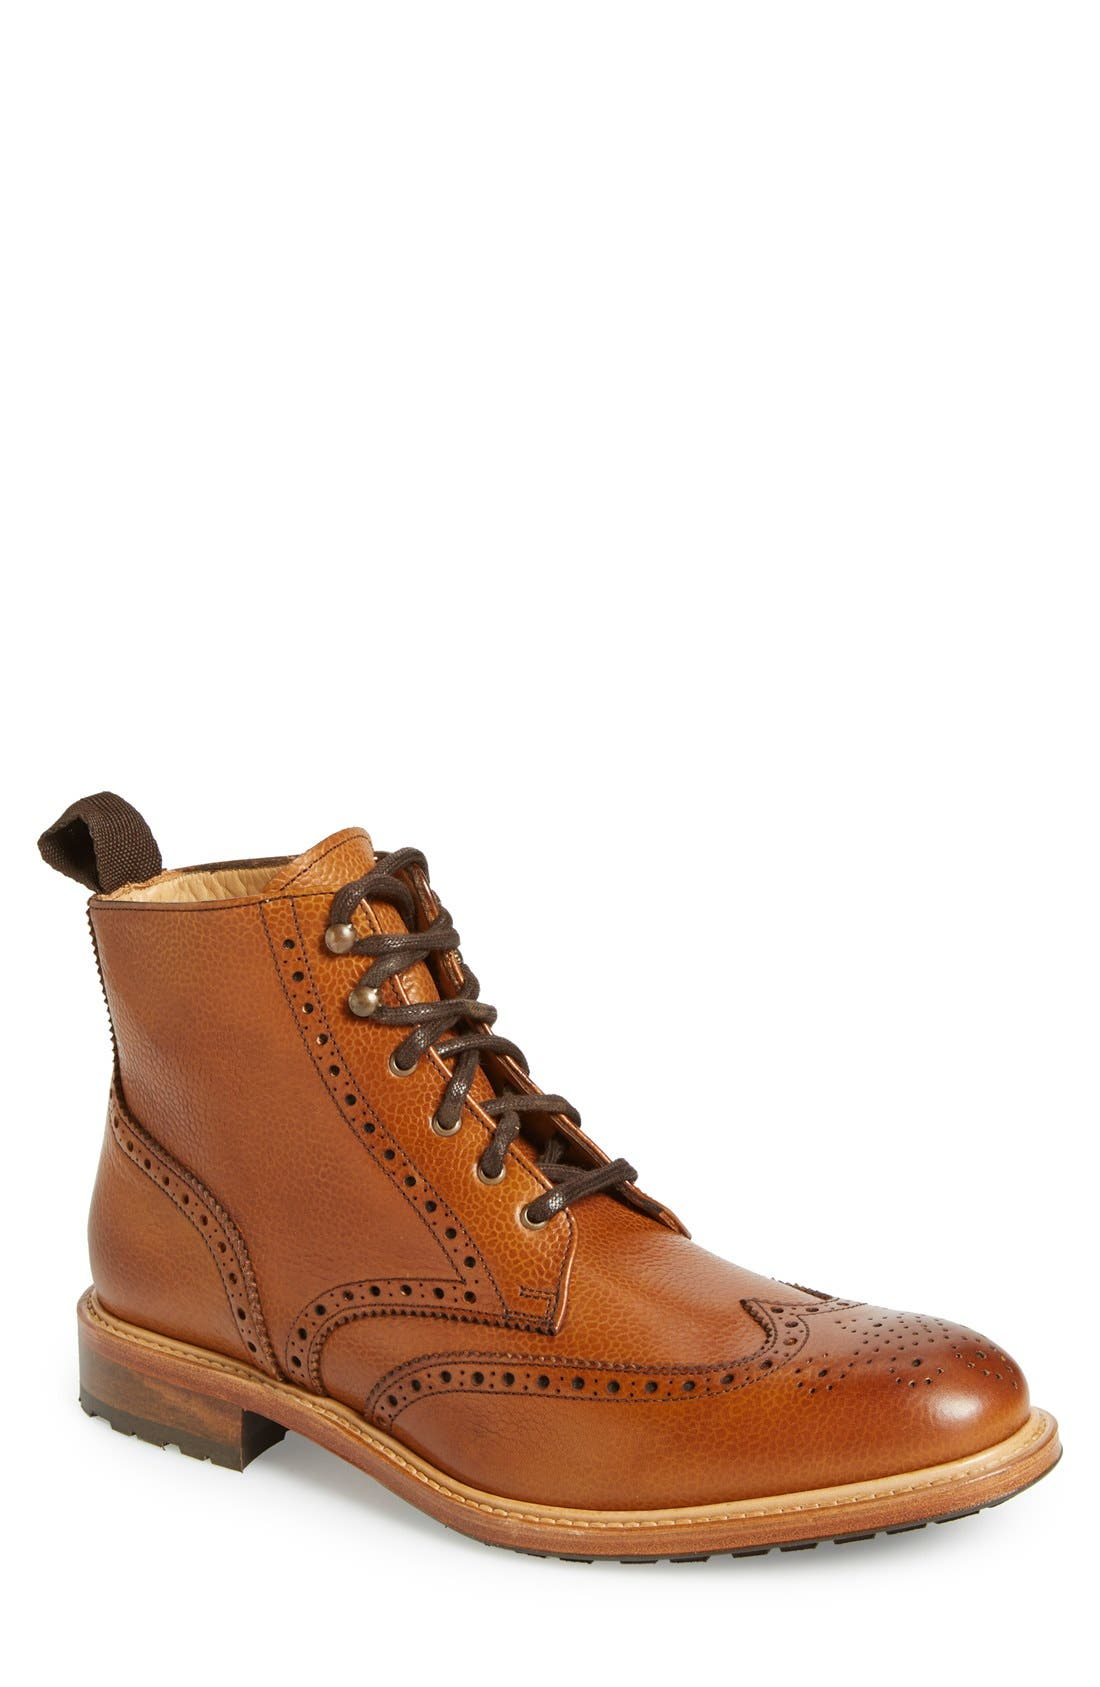 'McCormick' Wingtip Boot,                         Main,                         color, 230